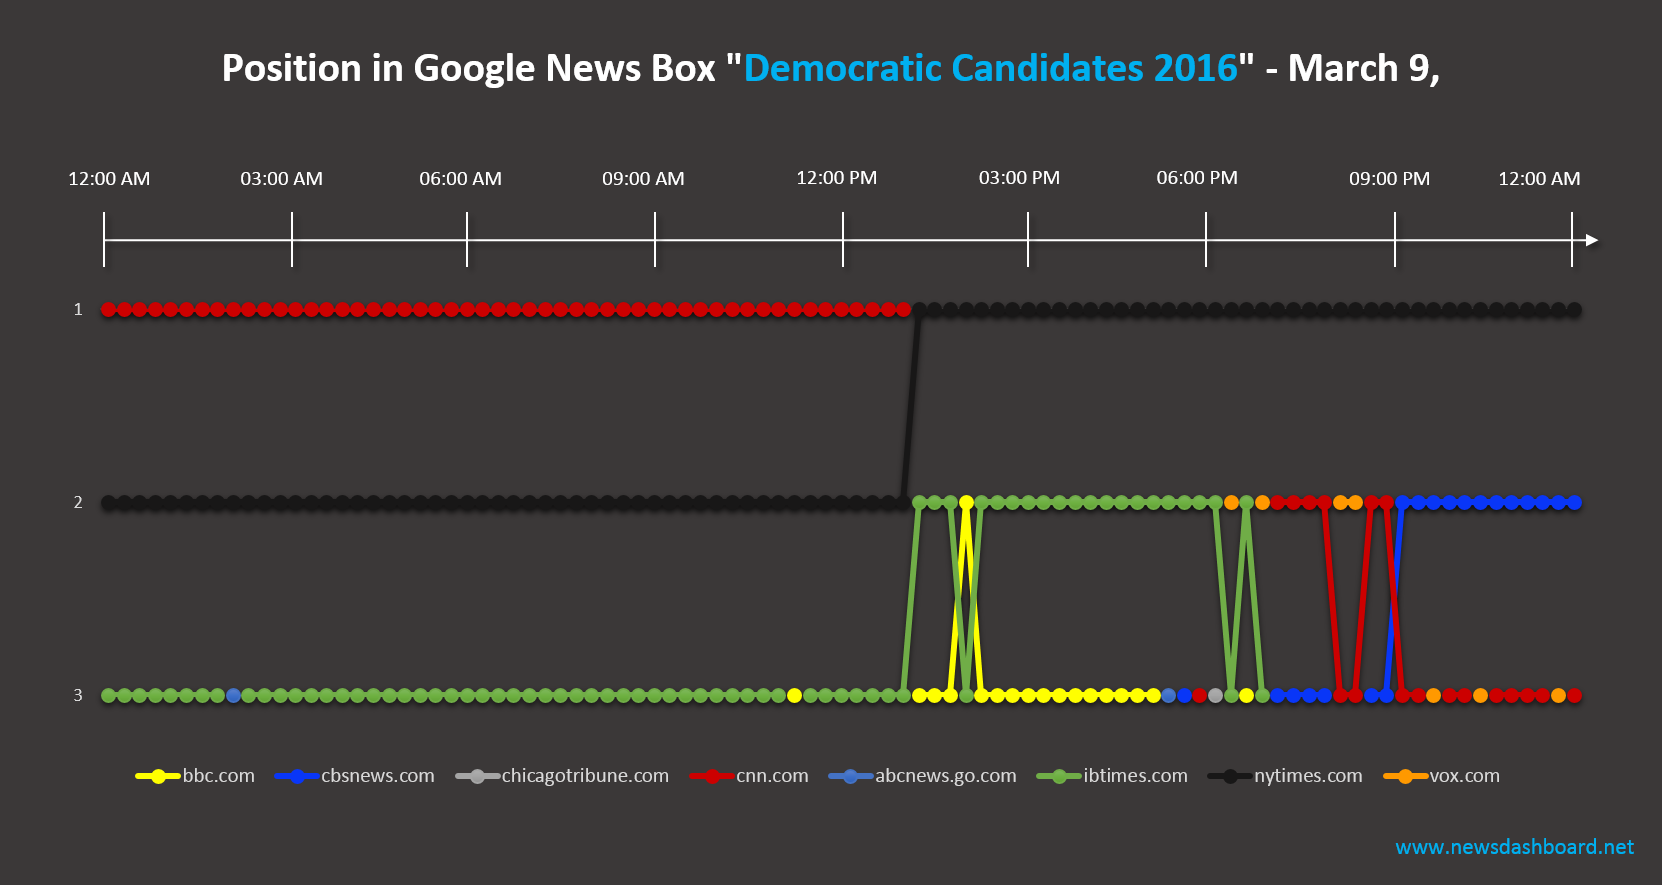 New York Times shared winner in News Box for Democratic Candidates 2016 with CNN.com